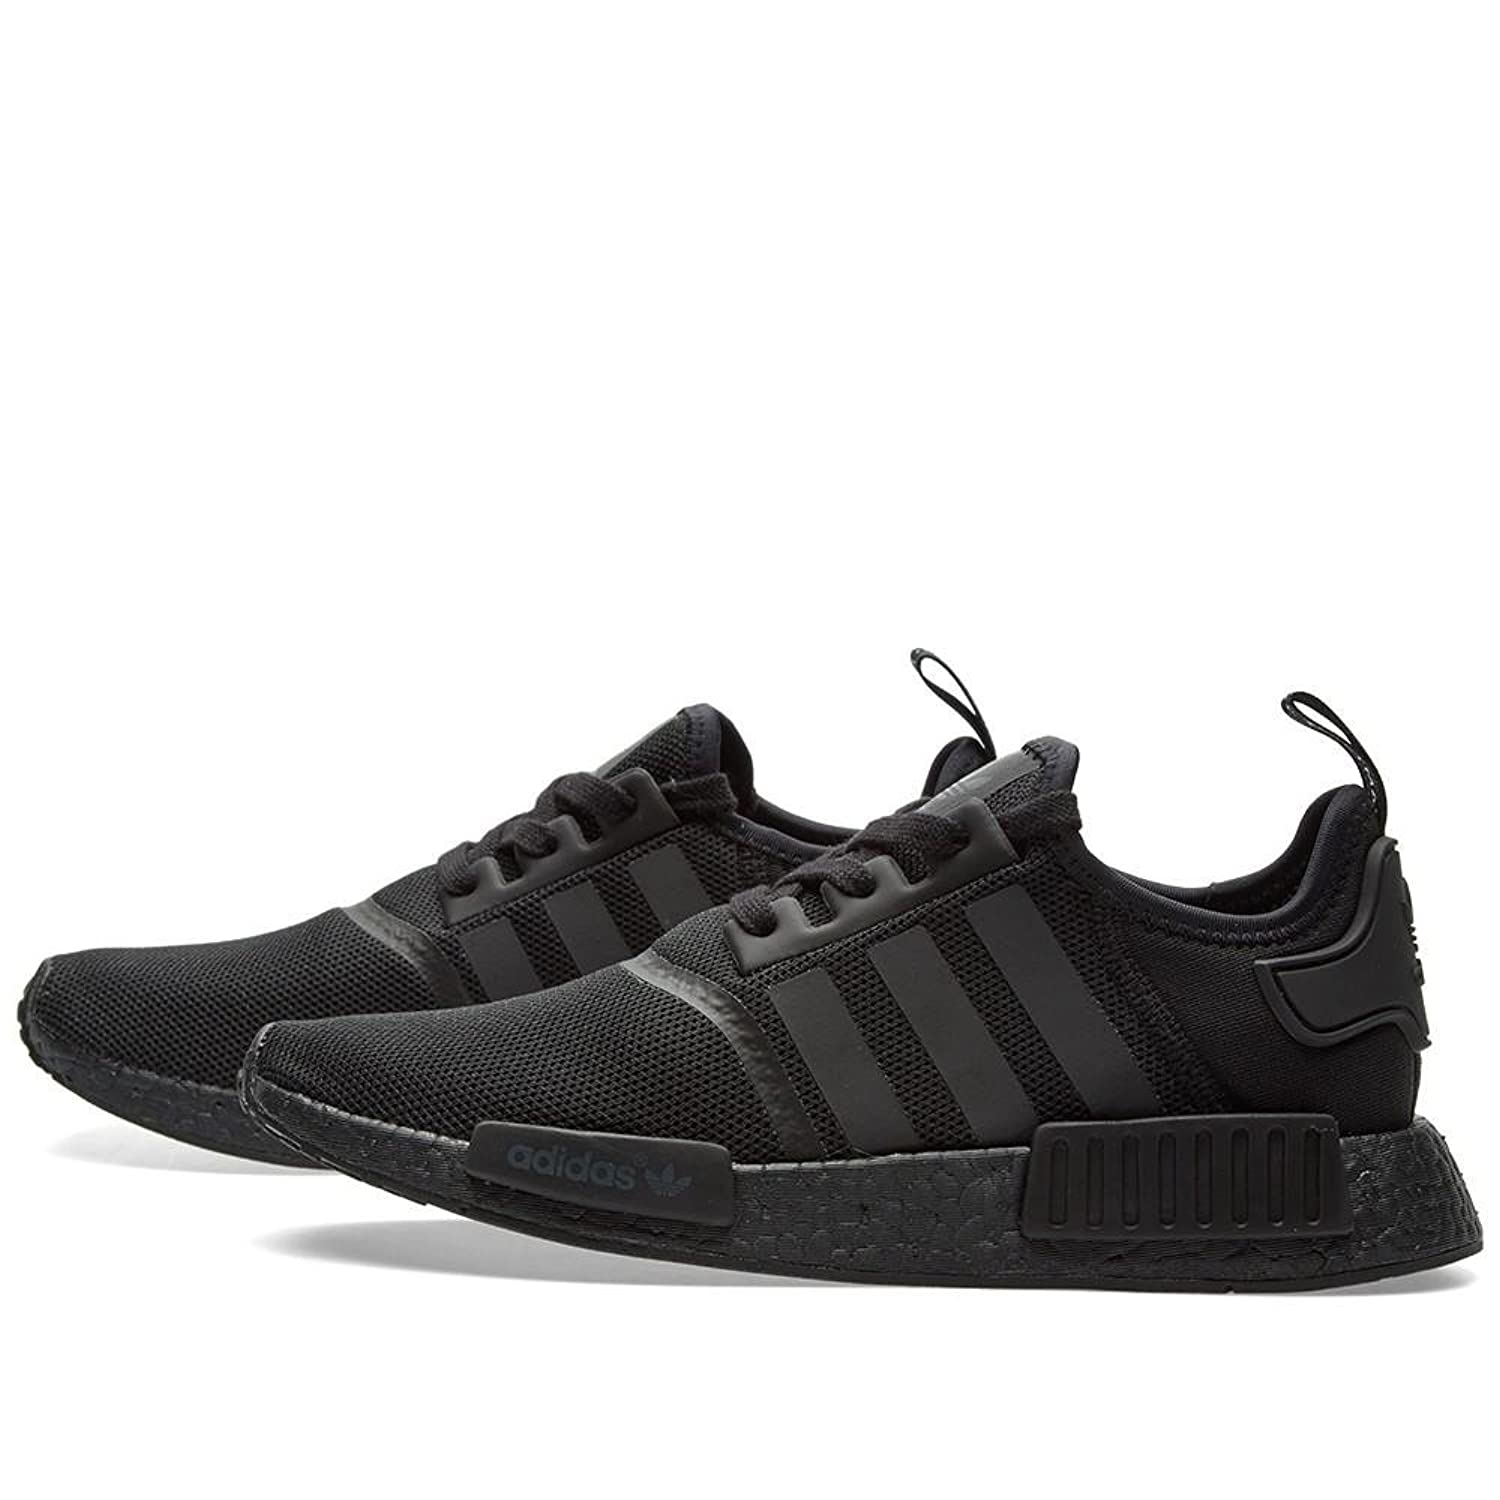 ADIDAS MENS NMD_R1 'TRIPLE BLACK' S31508 12 S31508